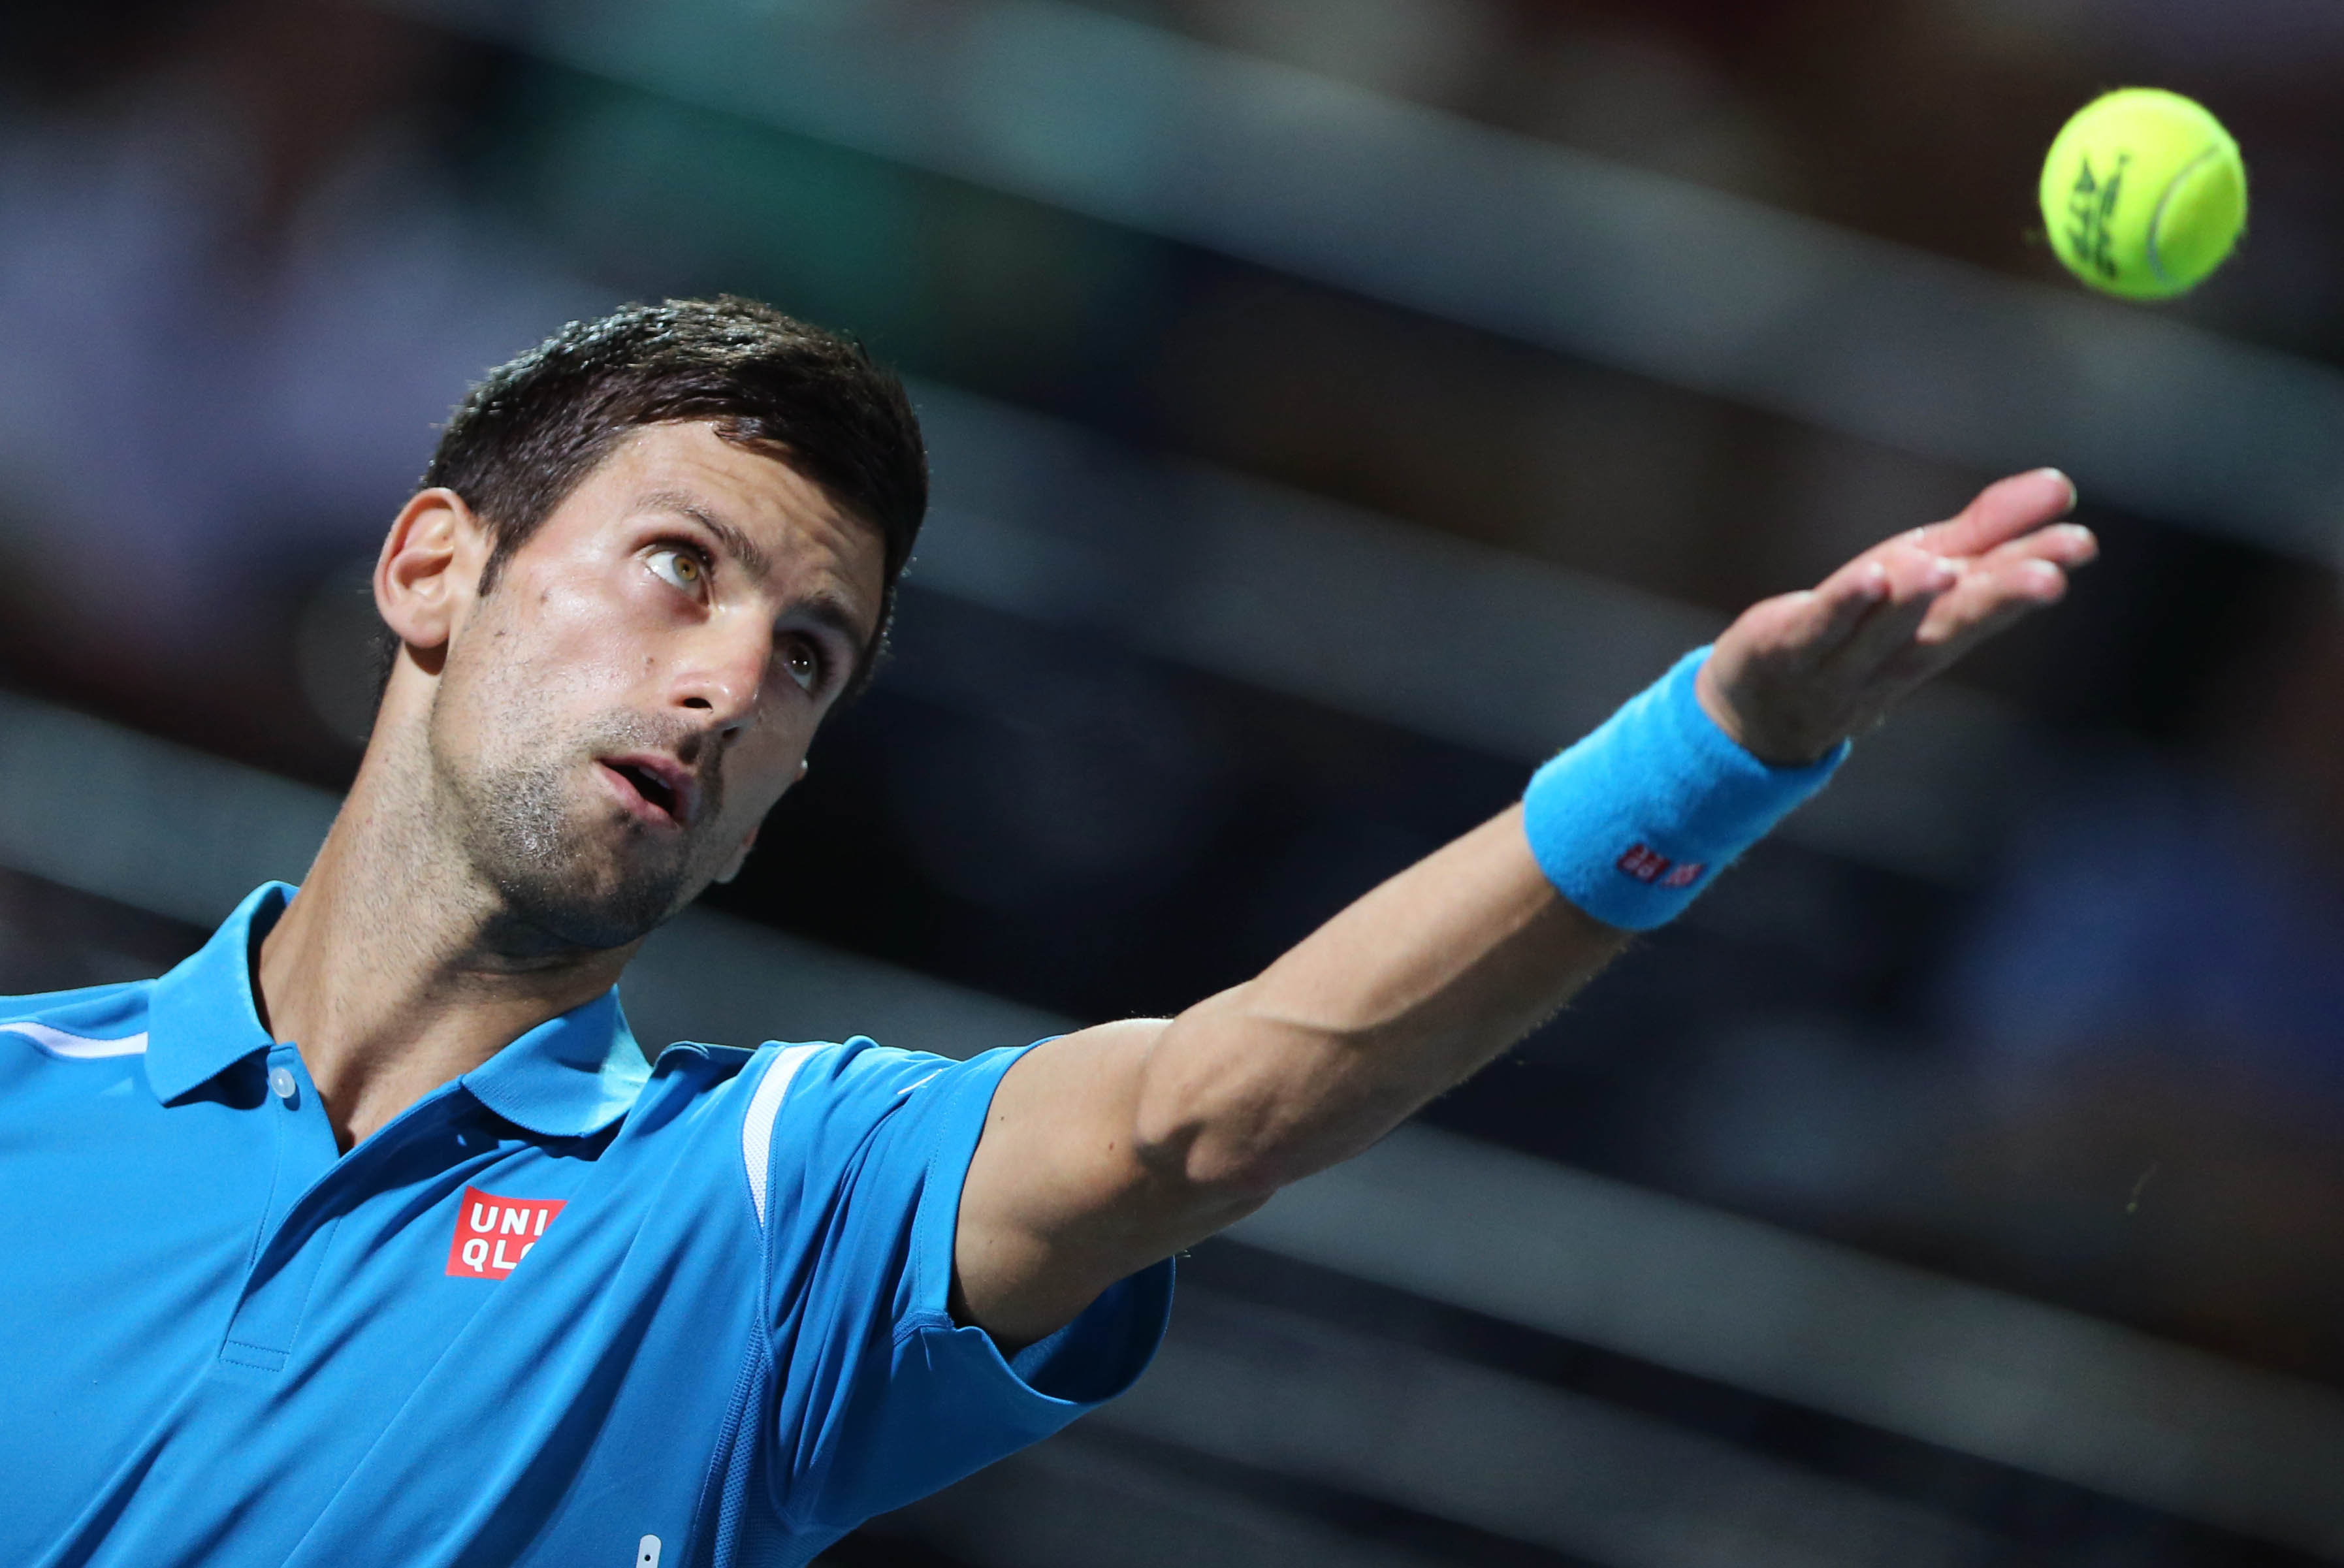 Novak Djokovic from Serbia serves the ball to Tommy Robredo from Spain during a first day match of the Dubai Tennis Championships in Dubai, United Arab Emirates, Monday, Feb. 22, 2016. (AP Photo/Kamran Jebreili)